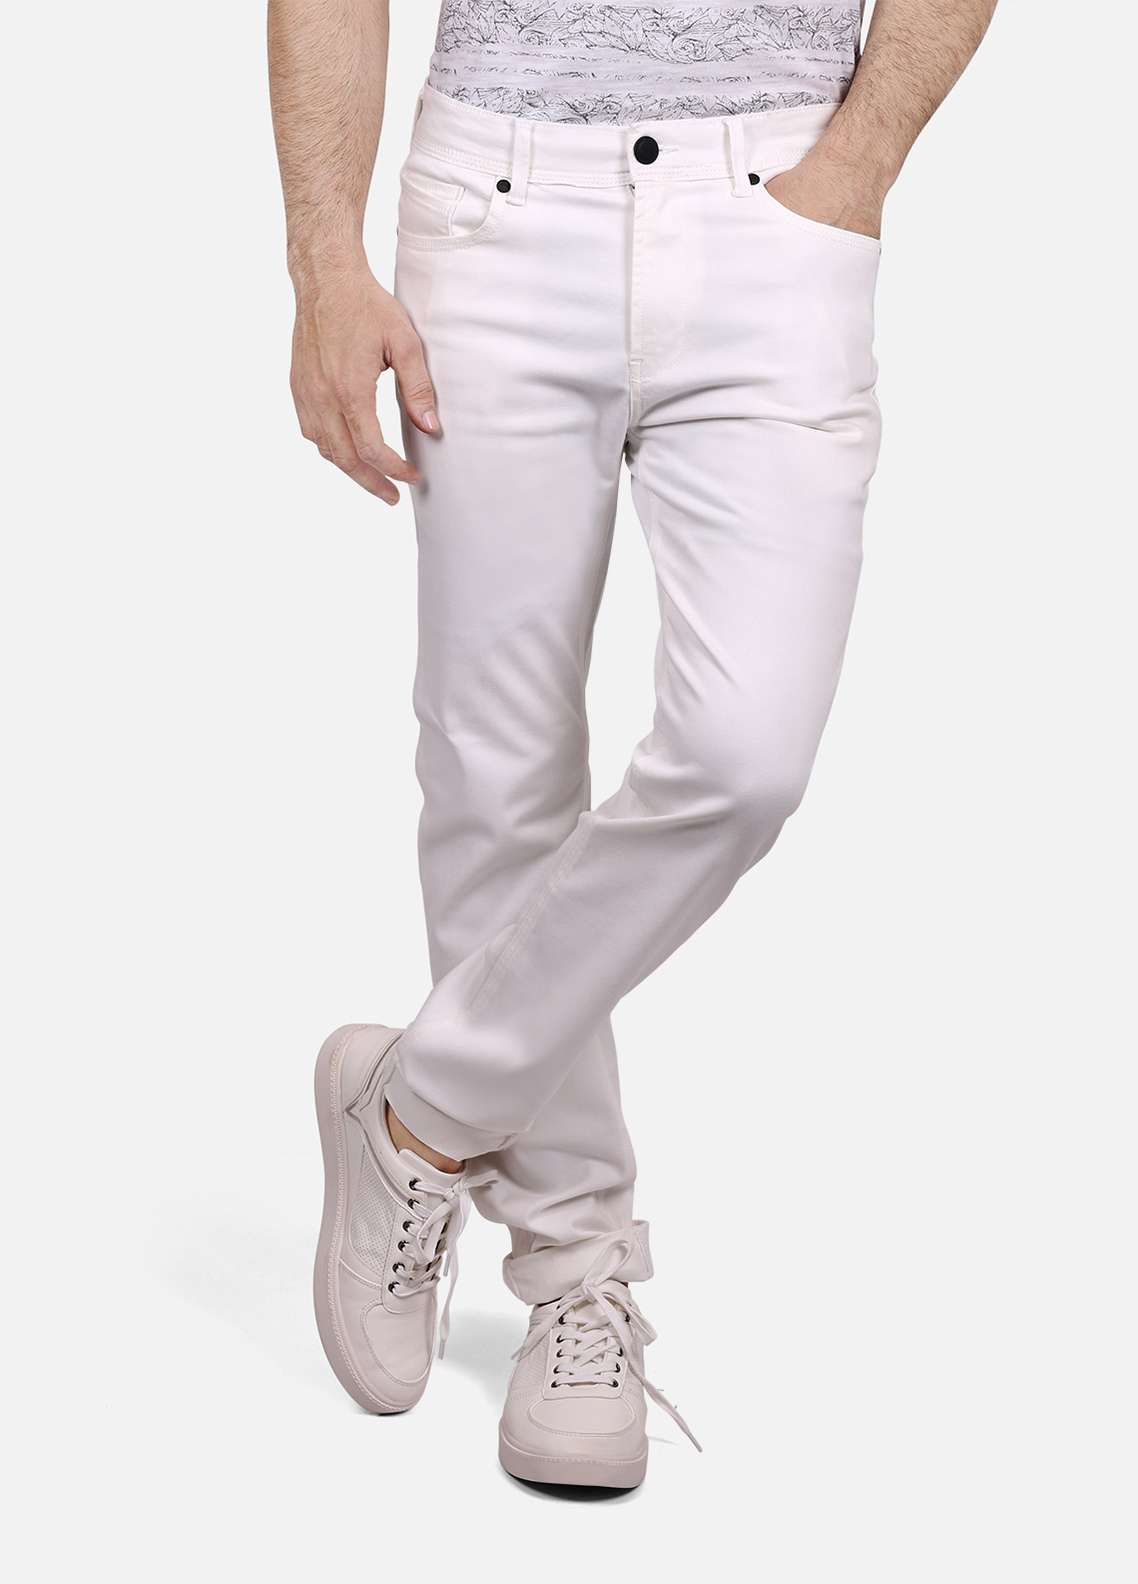 Furor Denim Casual Jeans for Men - Off White FRM18DP 018